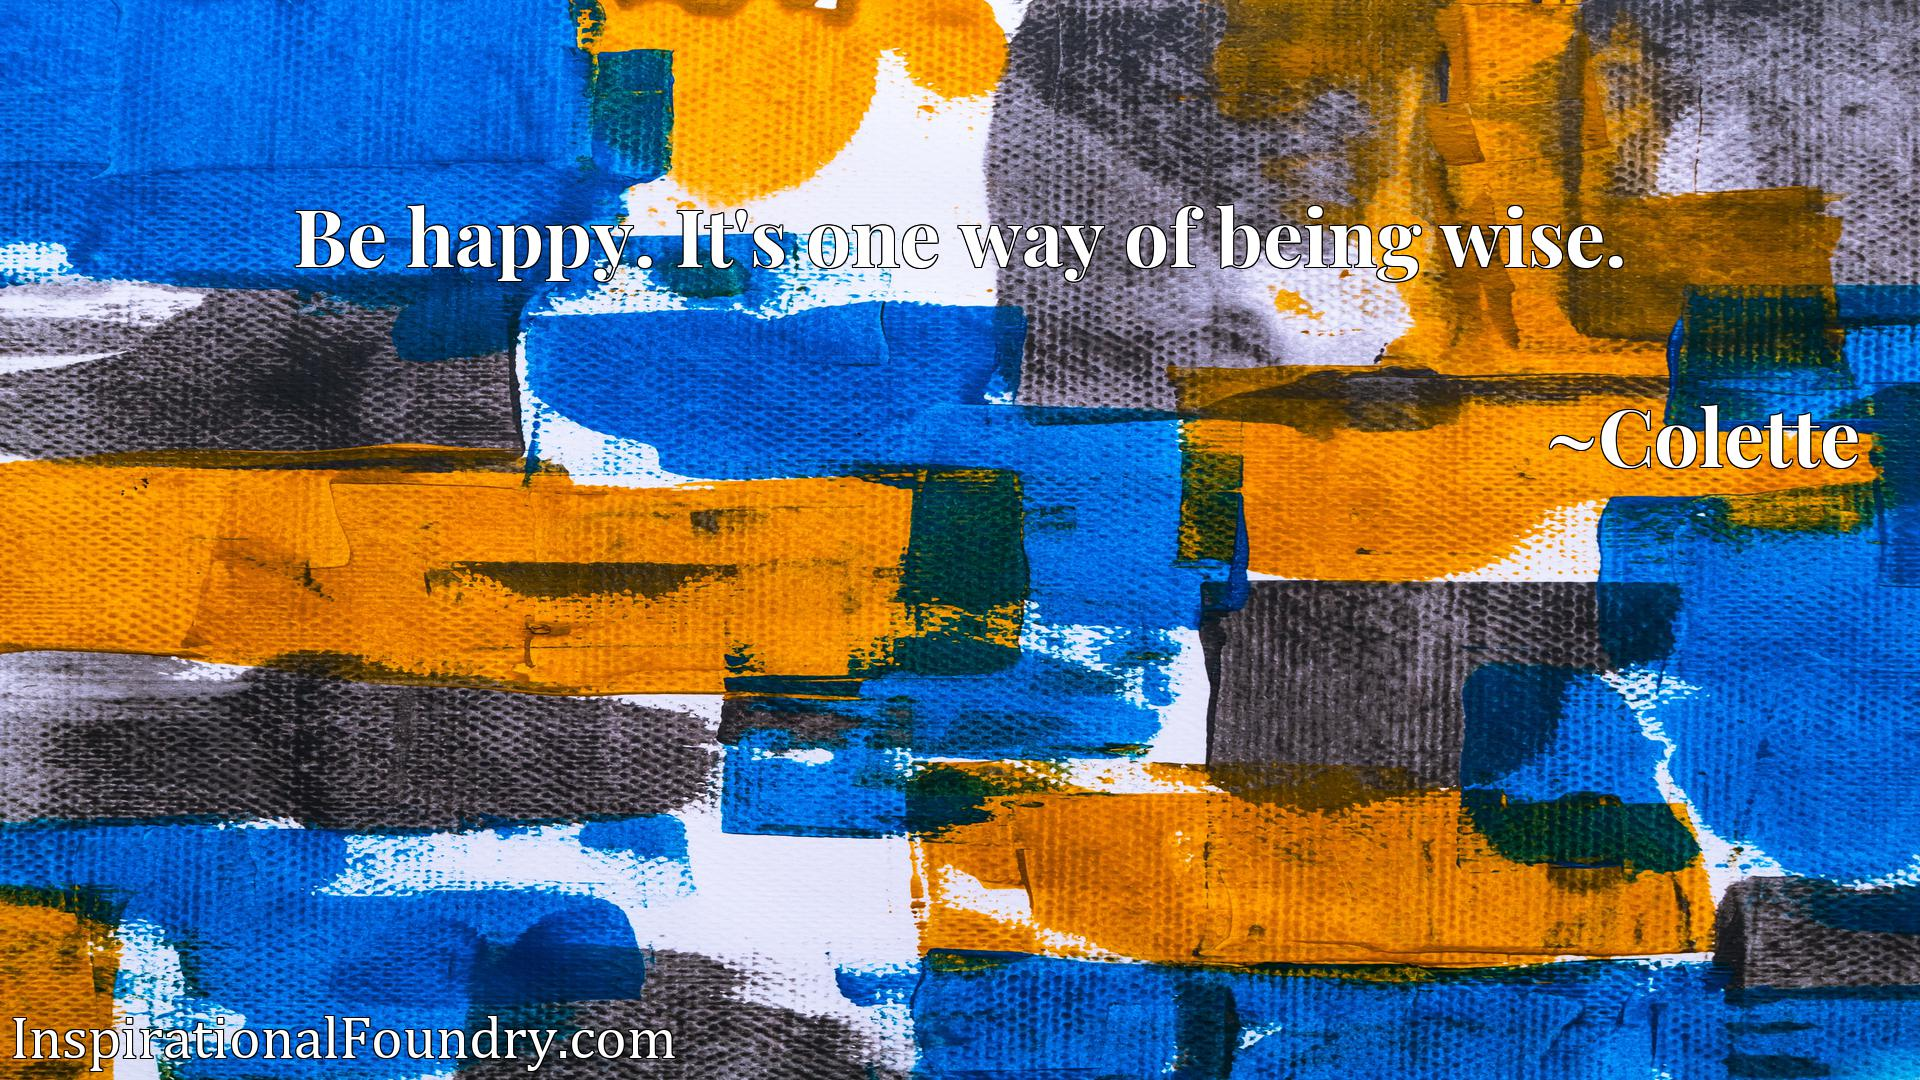 Quote Picture :Be happy. It's one way of being wise.